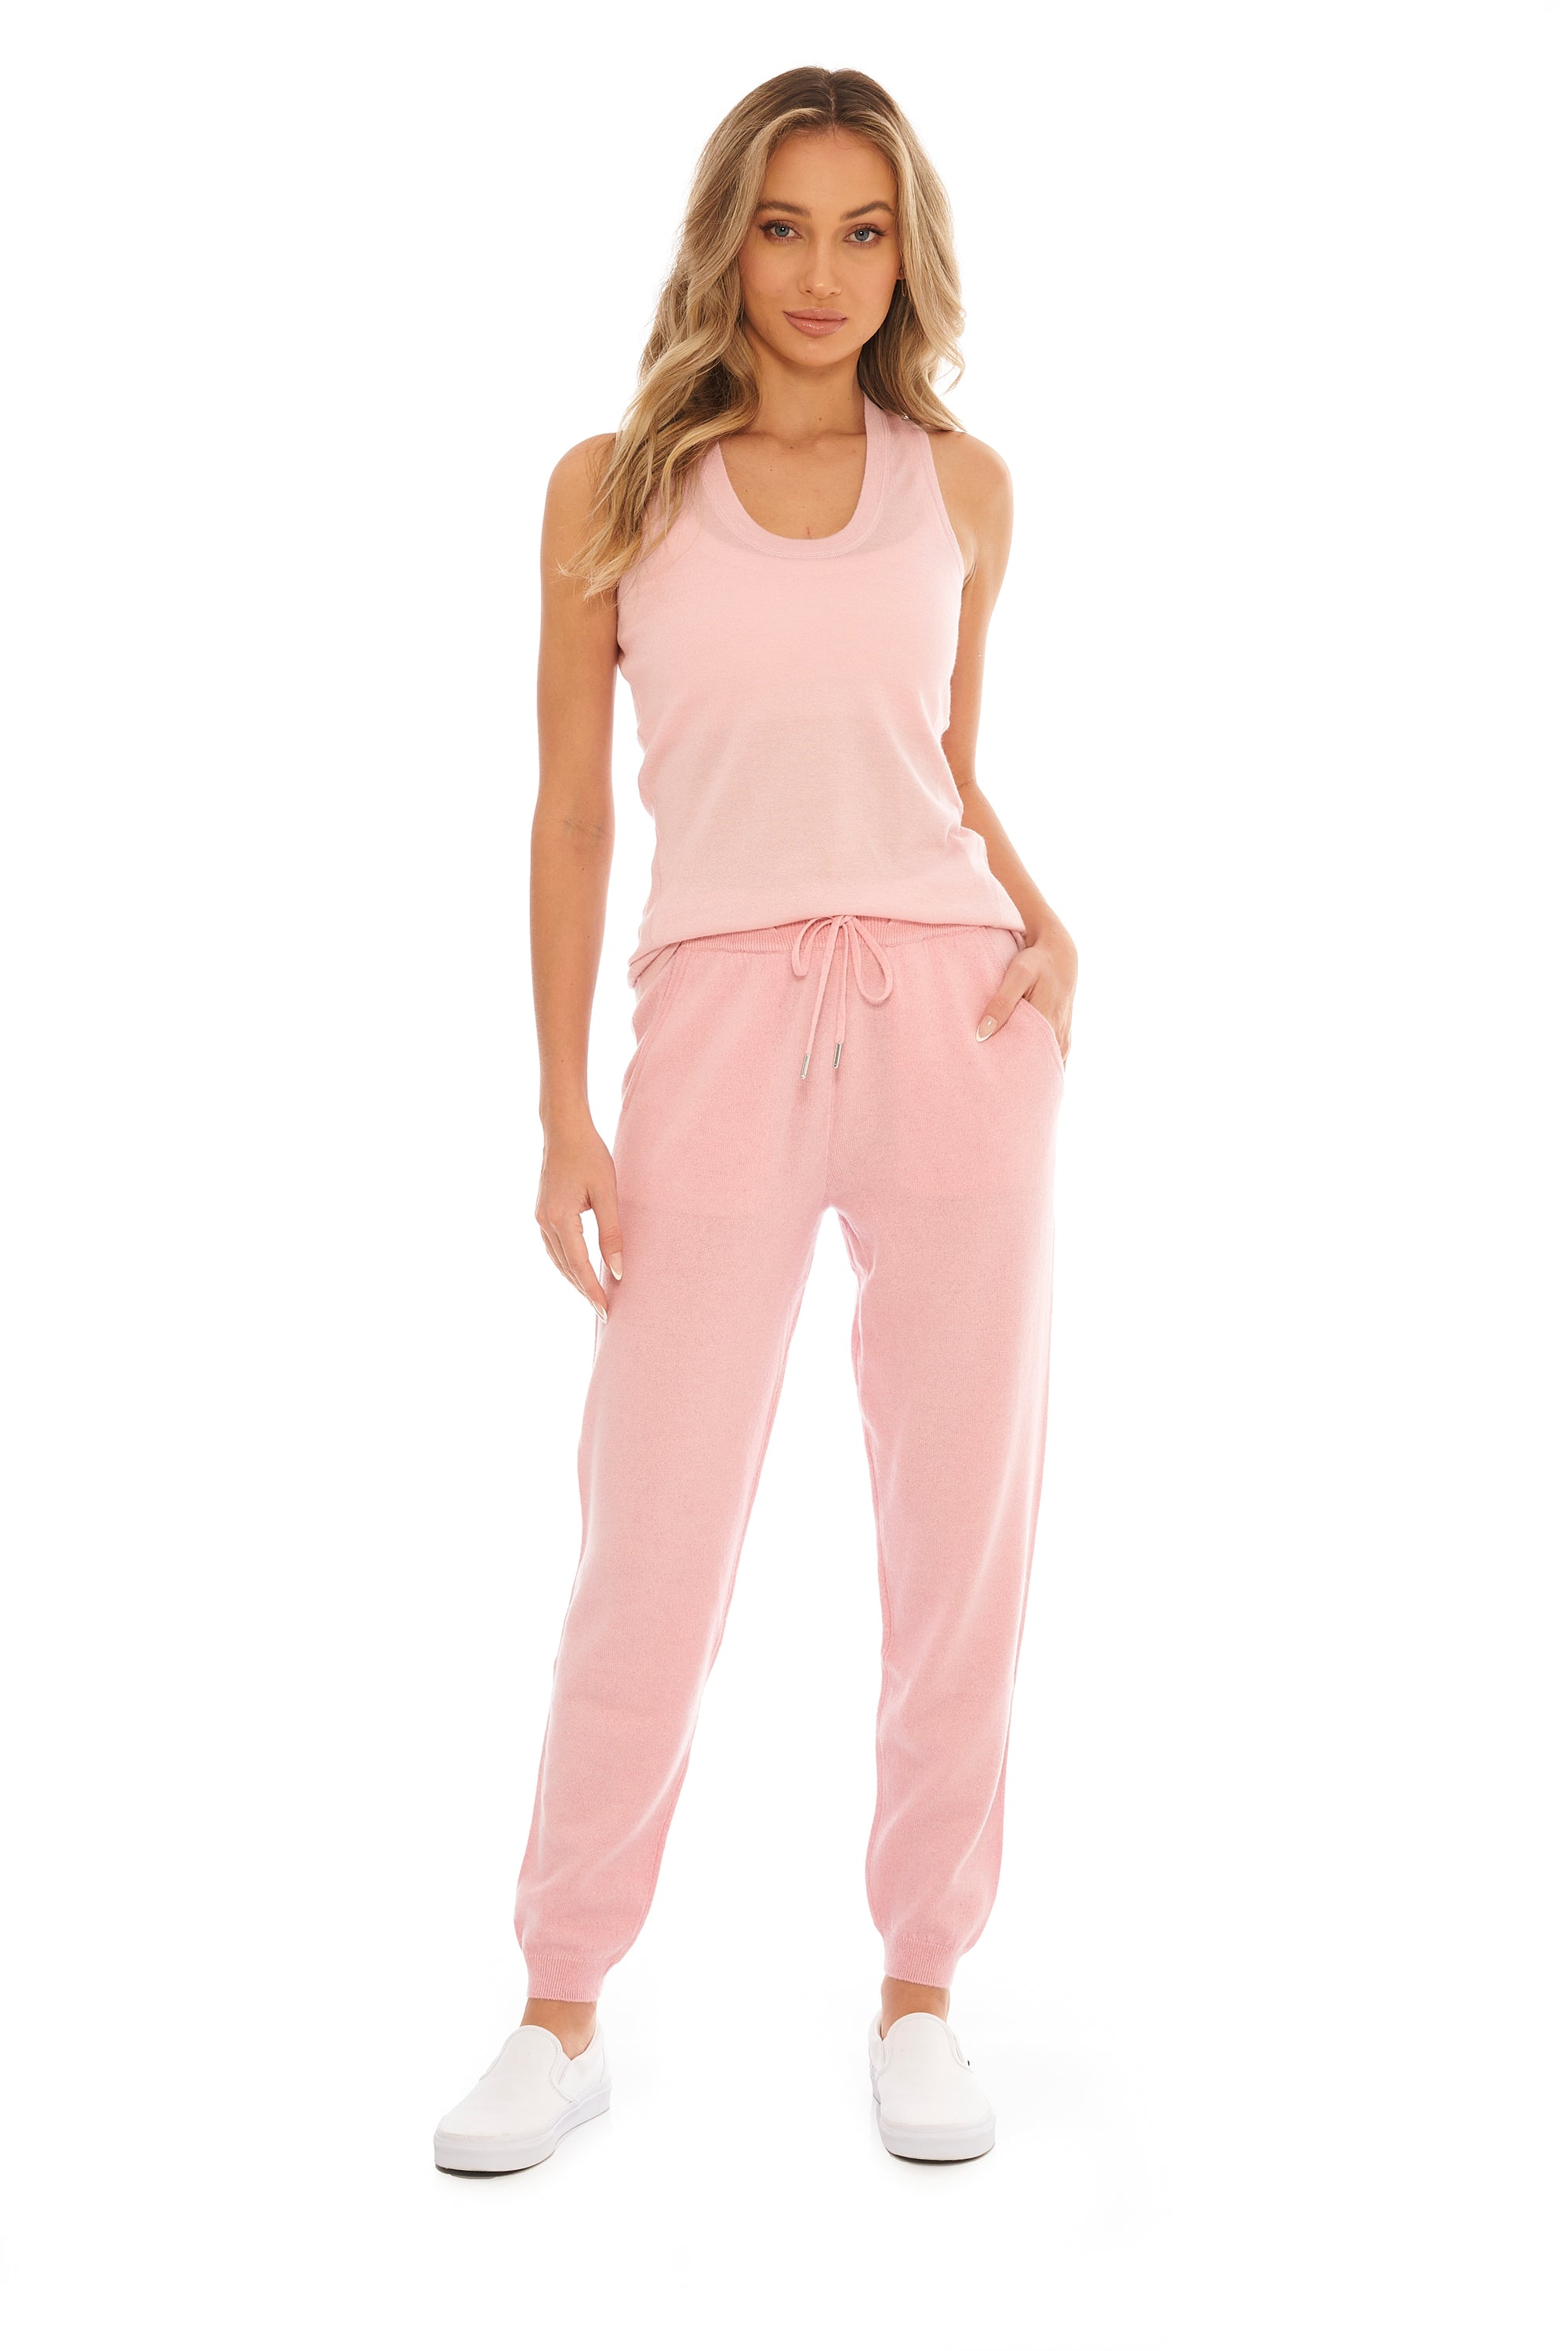 Bubblegum Cashmere Tank Top